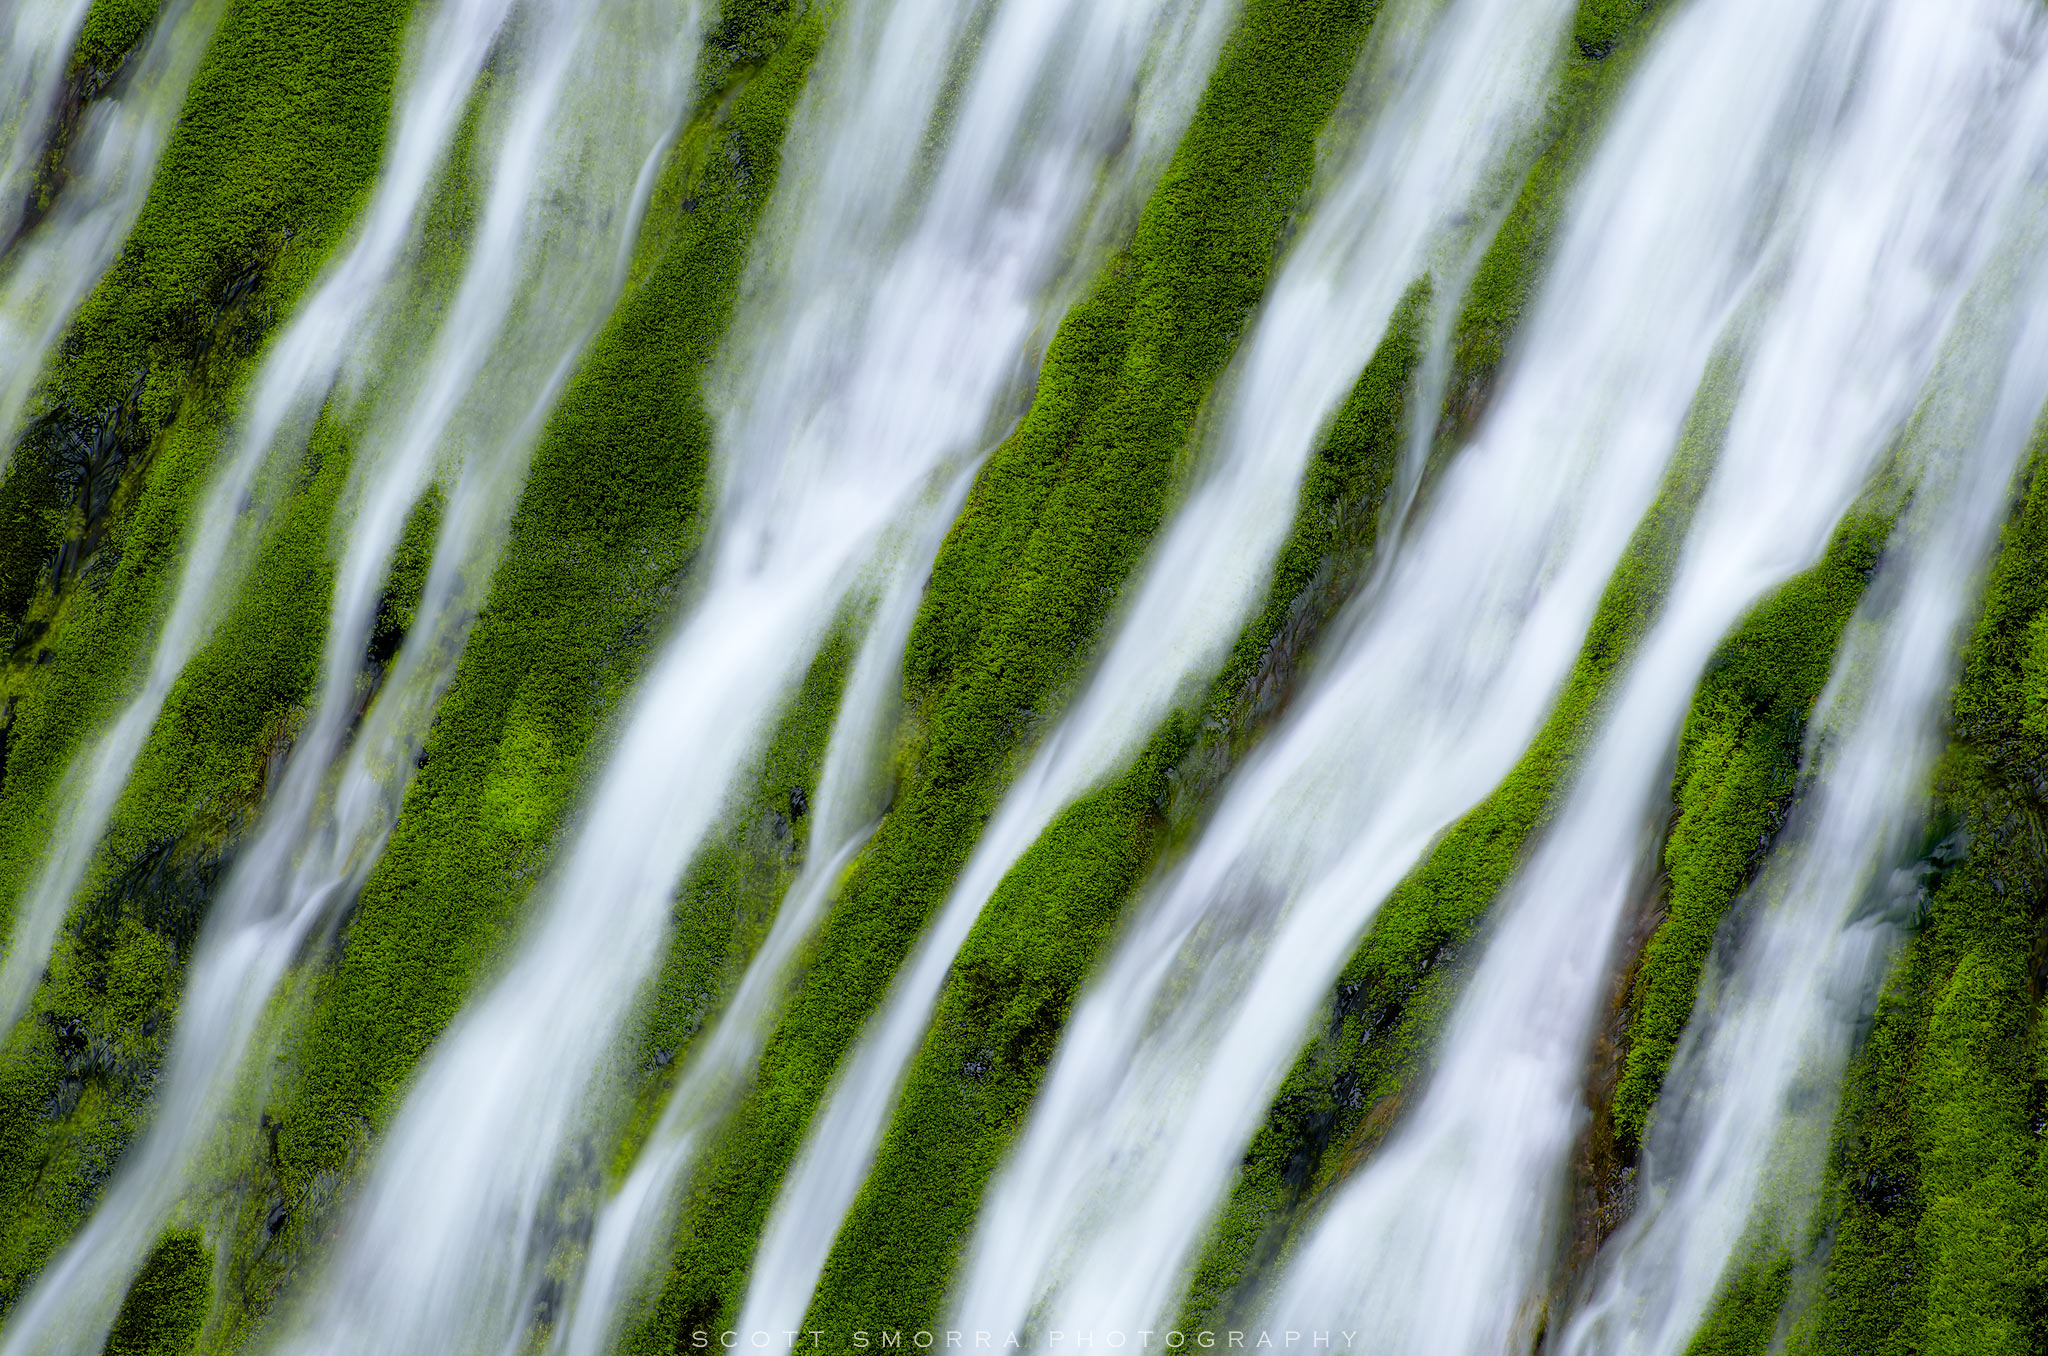 Fine Art Limited Edition of 100 - Waterfall and moss detail in the Columbia River Gorge of Washington. With a telephoto lens...